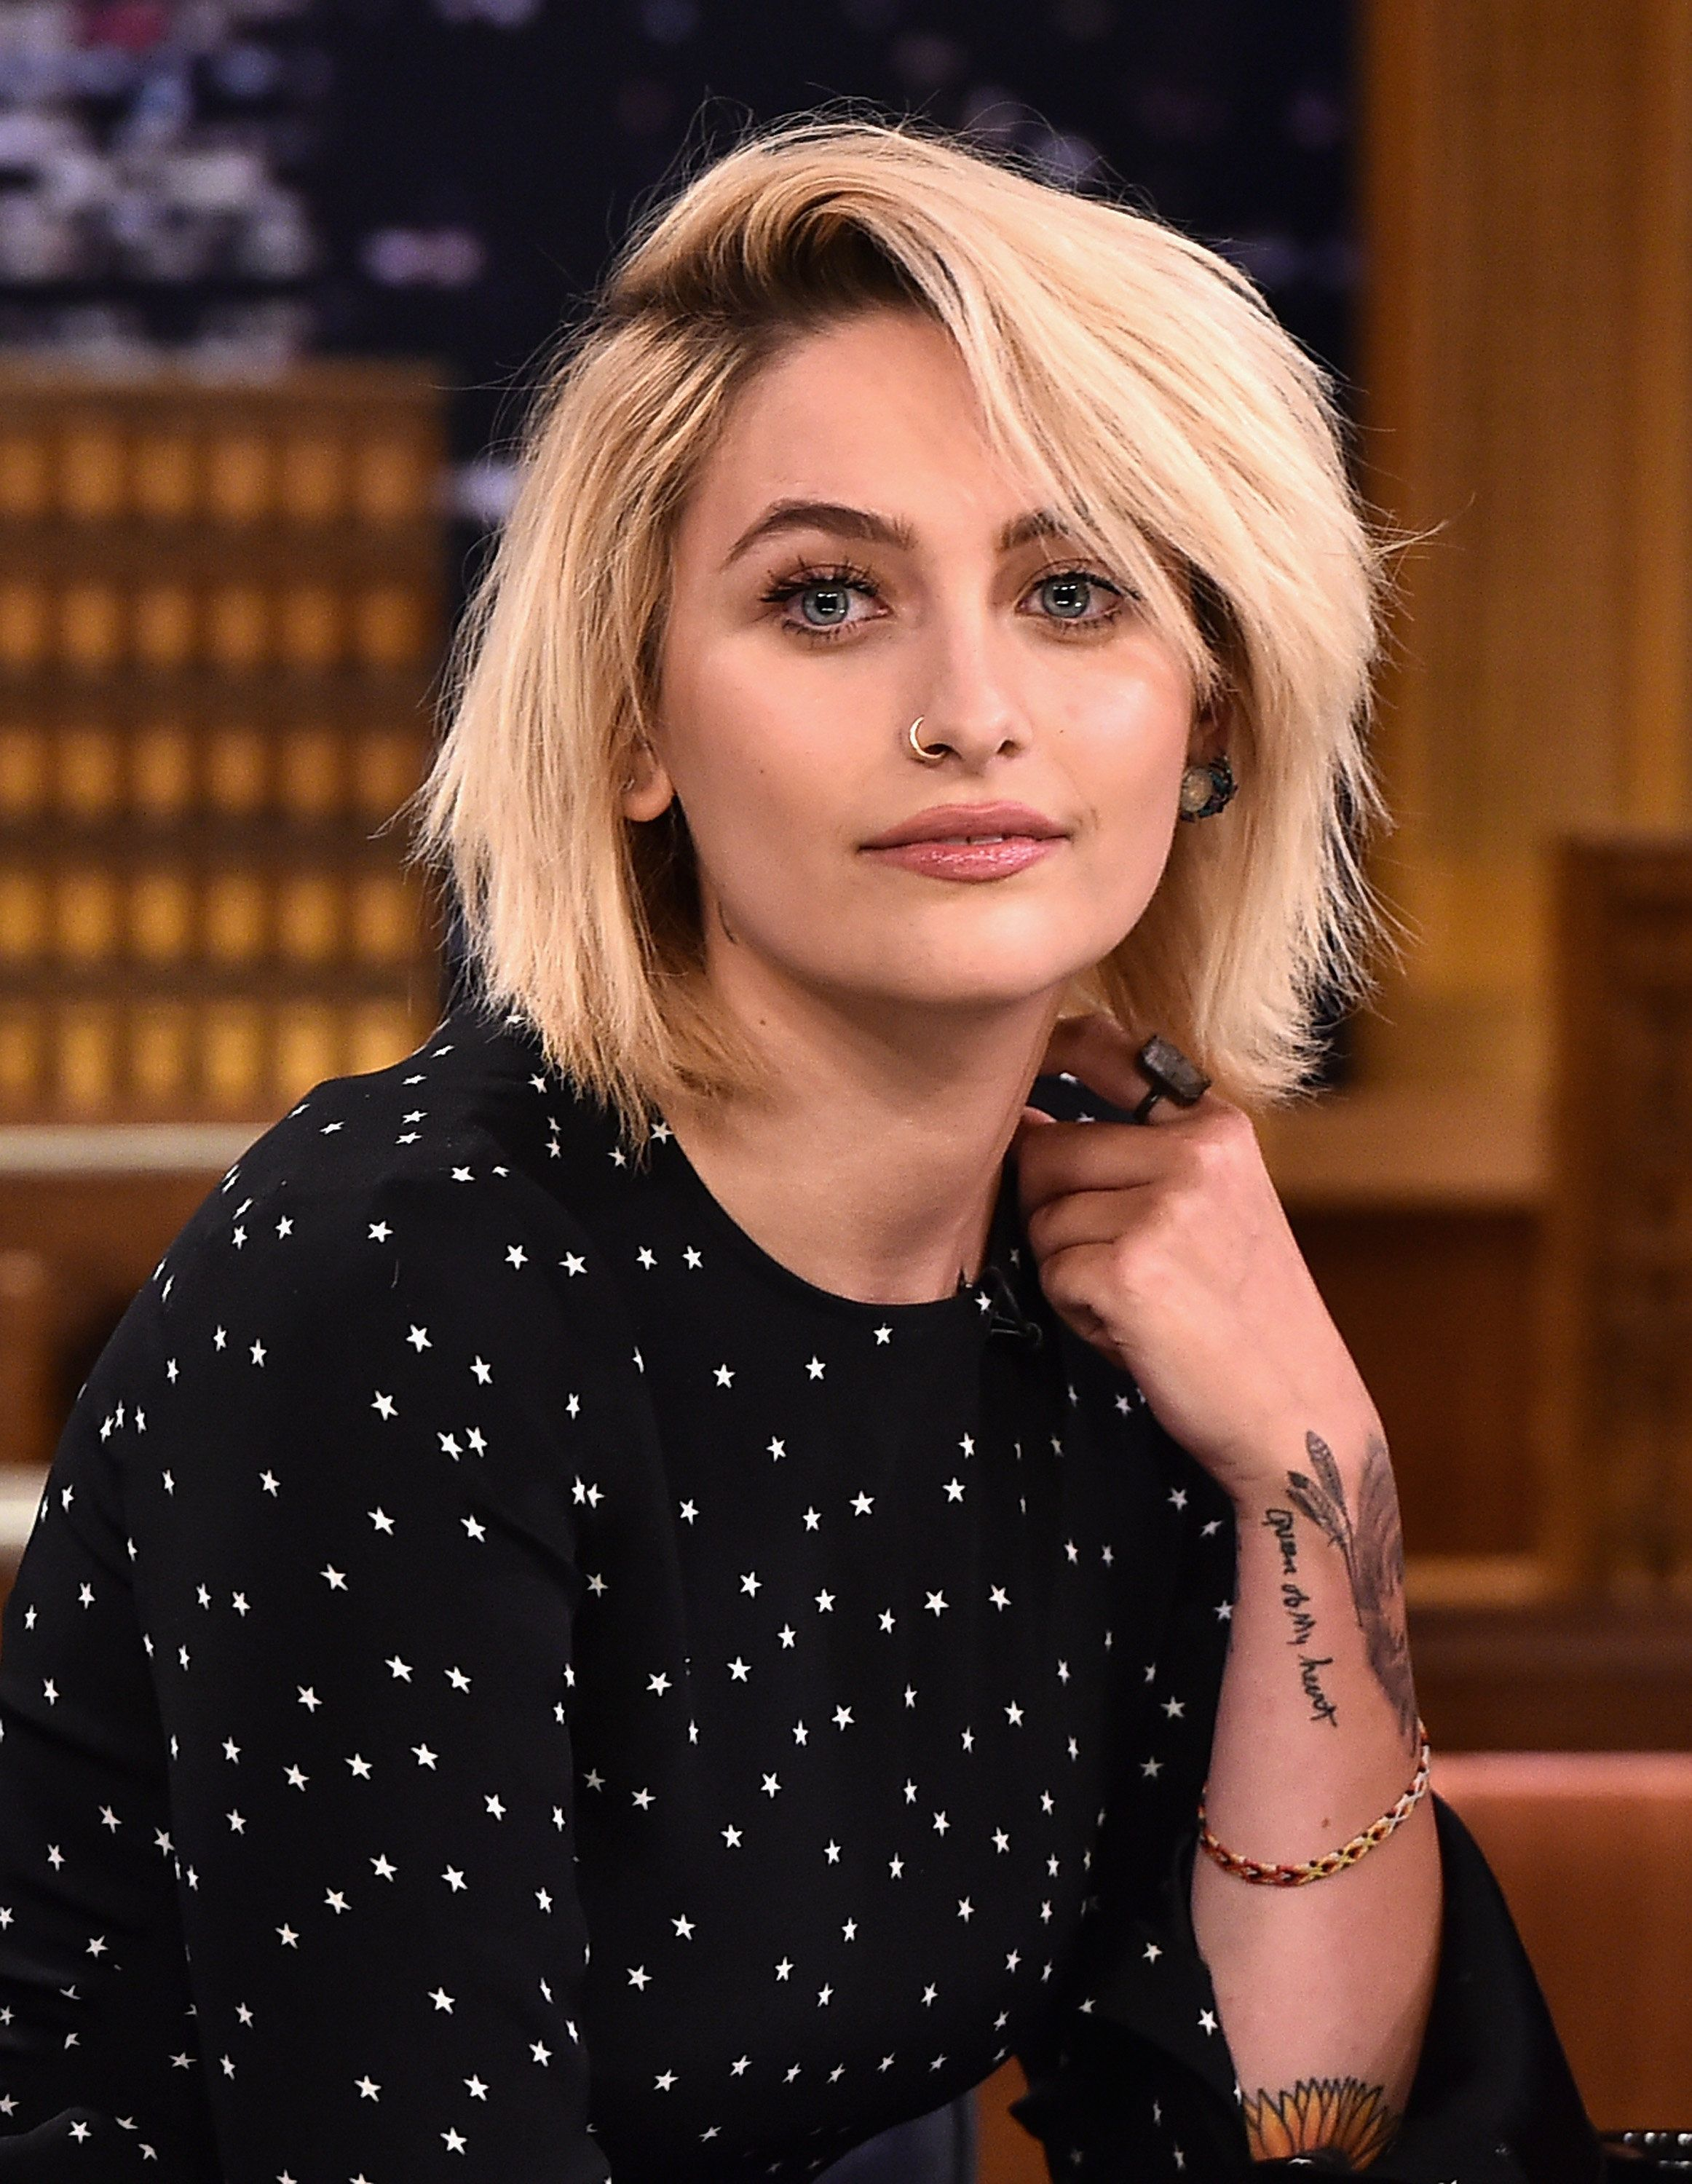 NEW YORK, NY - MARCH 20:  Paris Jackson Visits 'The Tonight Show Starring Jimmy Fallon' at Rockefeller Center on March 20, 2017 in New York City.  (Photo by Theo Wargo/Getty Images)